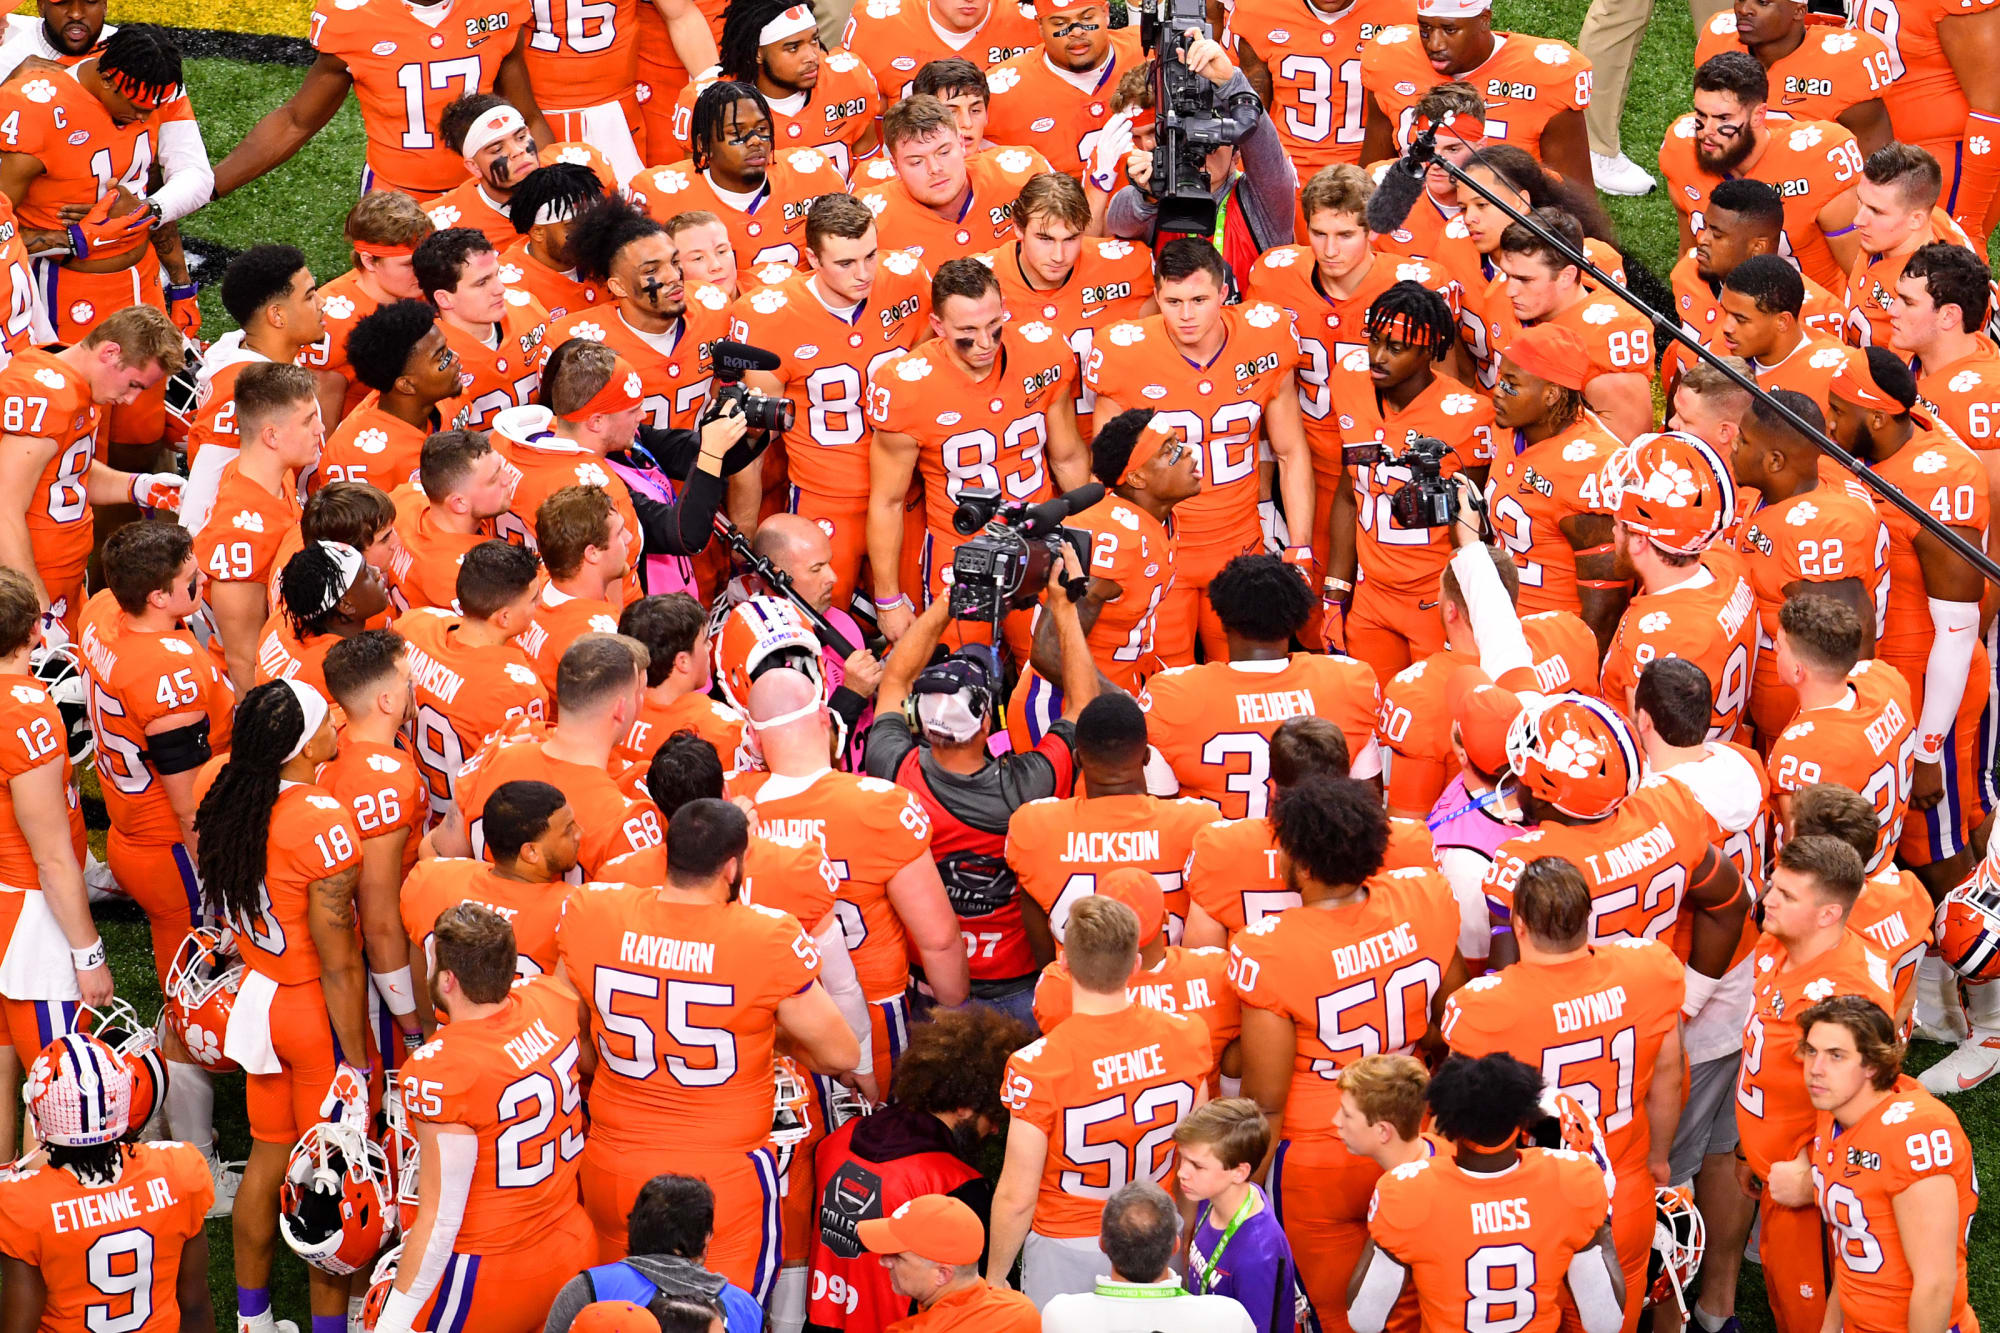 Clemson Football: Teams continue to stay steps behind the Tigers